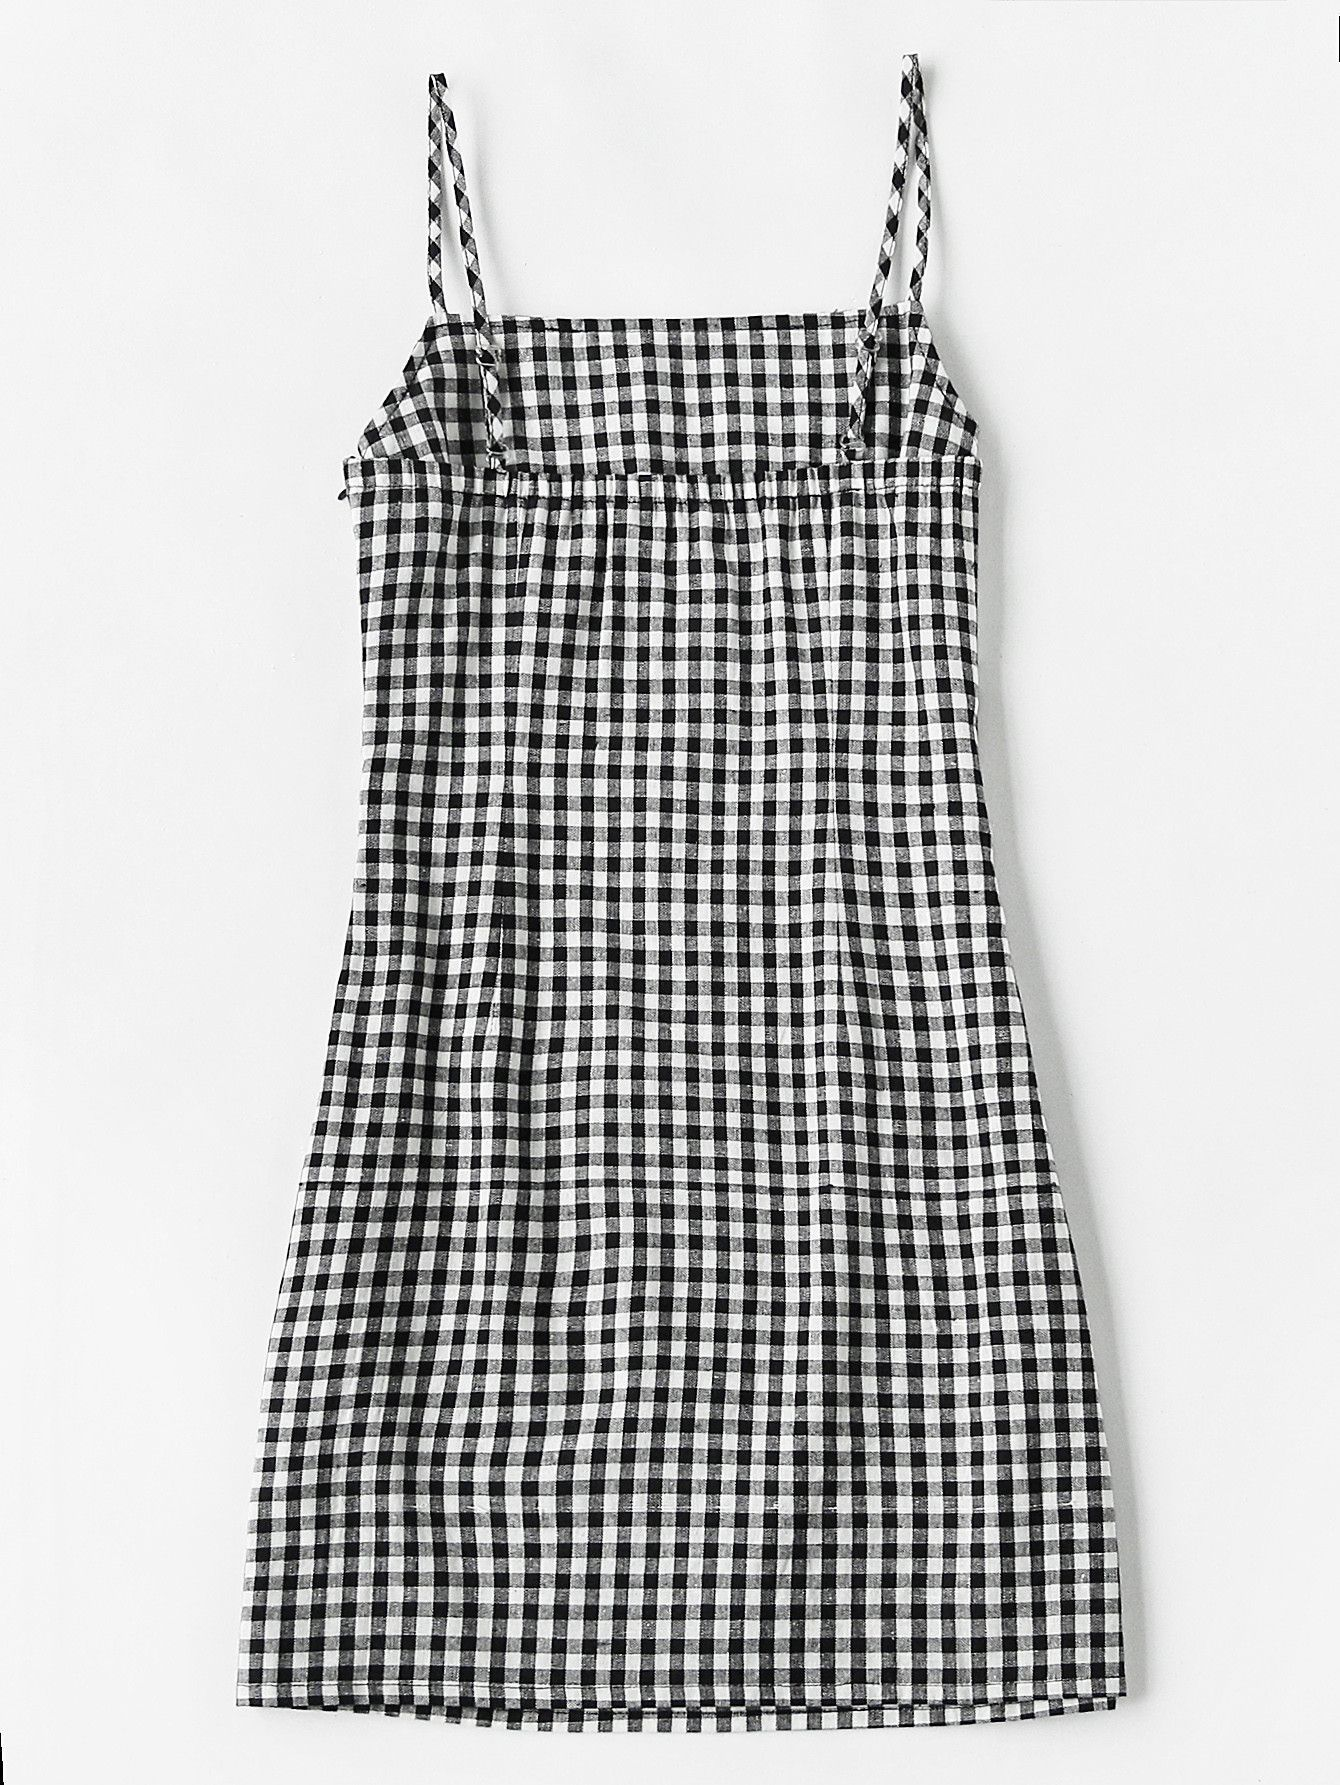 Fabric Fabric Has No Stretch Season Summer Type Slip Pattern Type Plaid Sleeve Length Sleeveless Color Black A Checkered Dress Cami Slip Dress Cami Dress